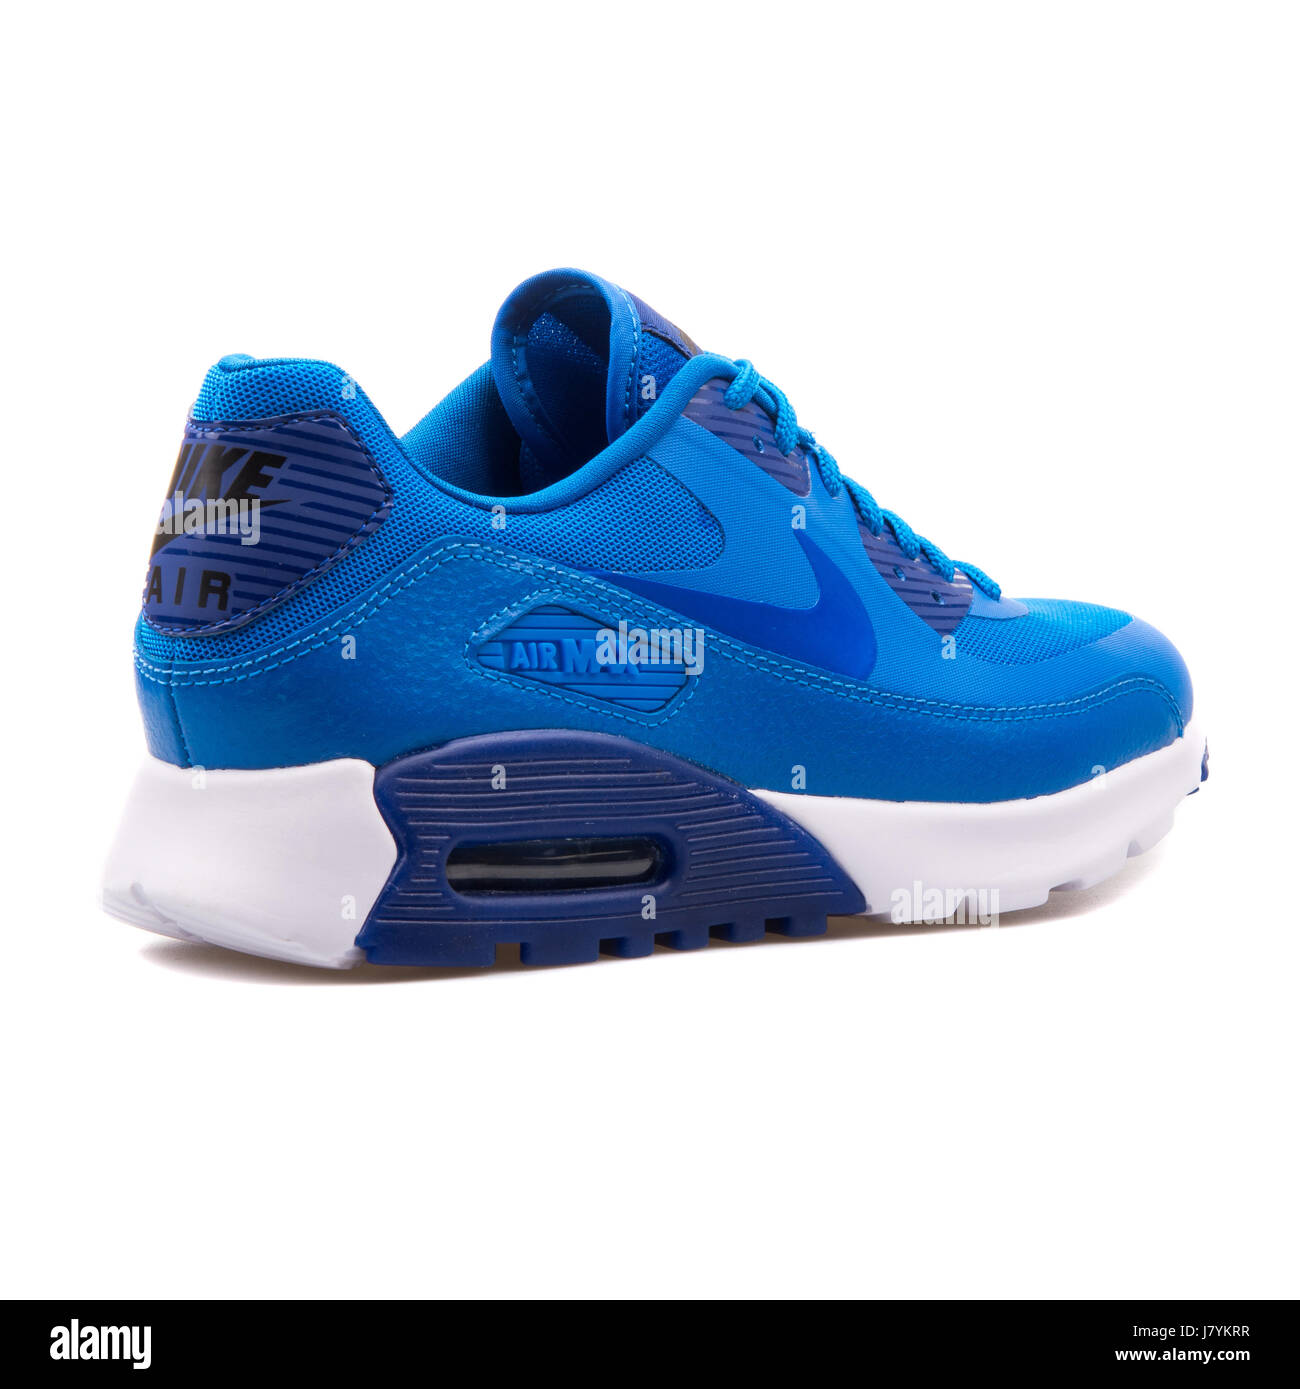 half off 8acb8 67eb6 Nike W Air Max 90 Ultra Essential Blue Women Running ...